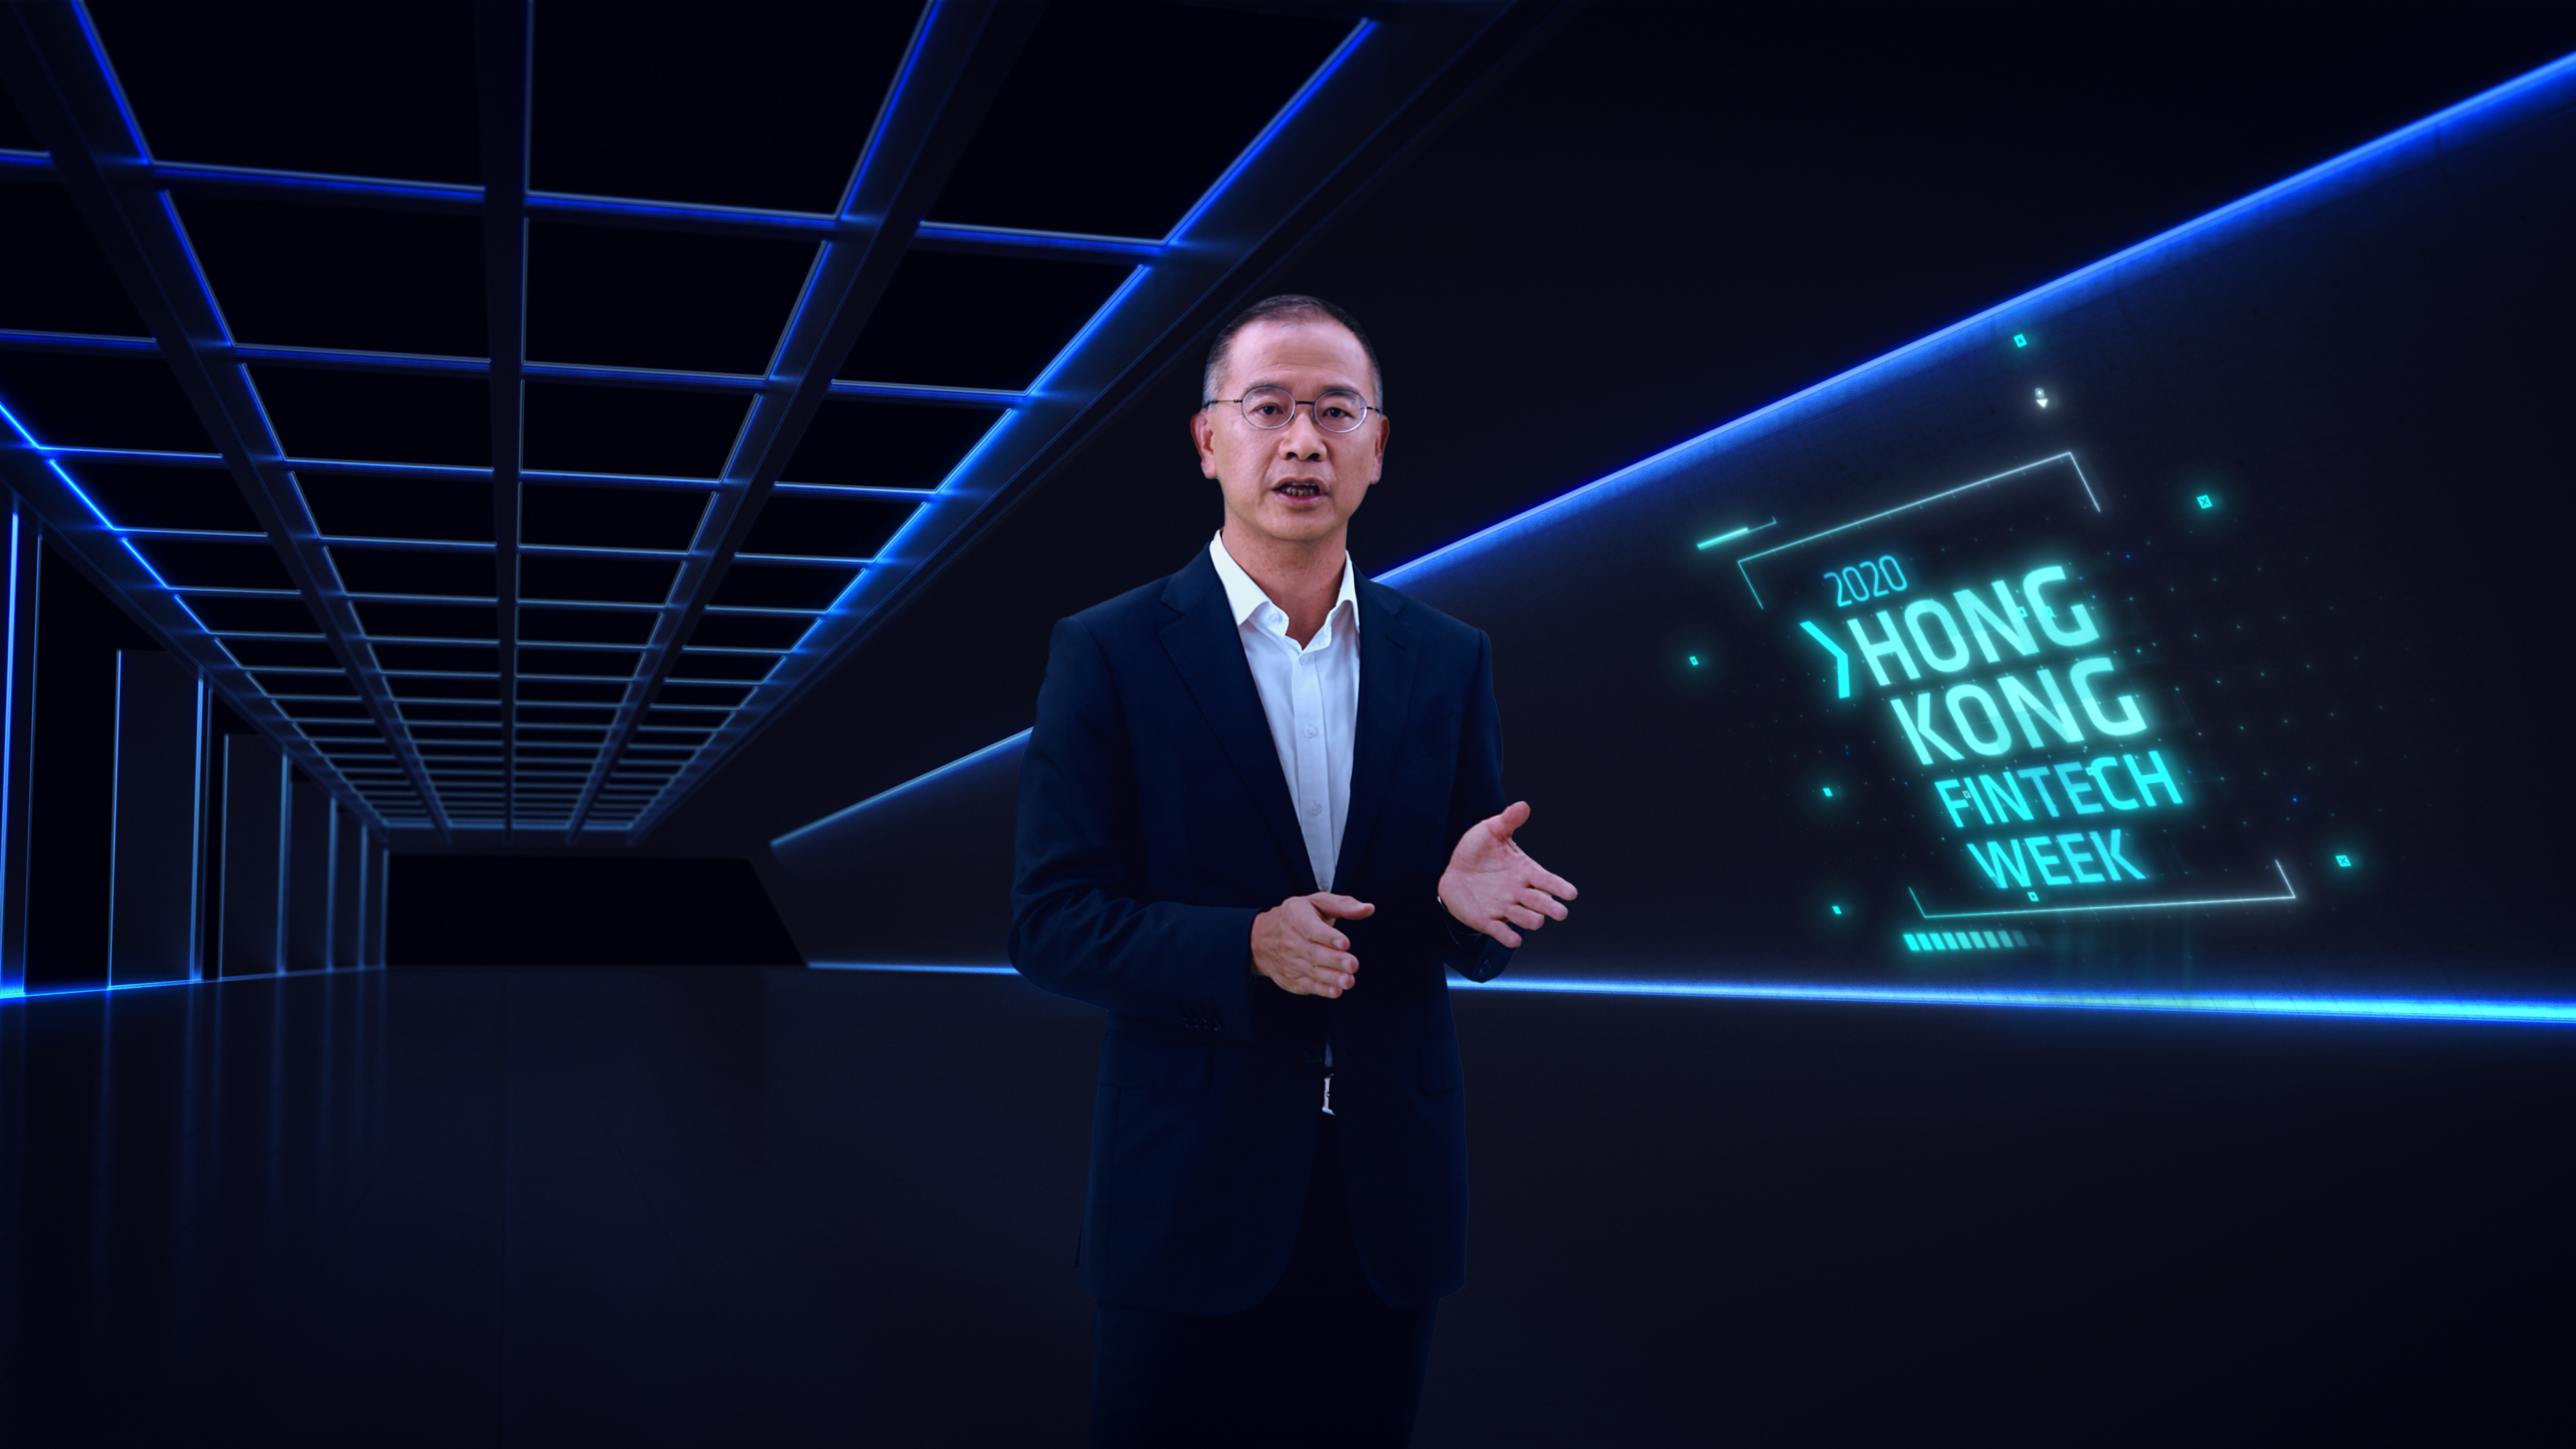 Mr Eddie Yue, Chief Executive of the HKMA, delivers an opening keynote at virtual Hong Kong FinTech Week 2020 about Hong Kong's fintech strategy in the future. Click here to watch the video.